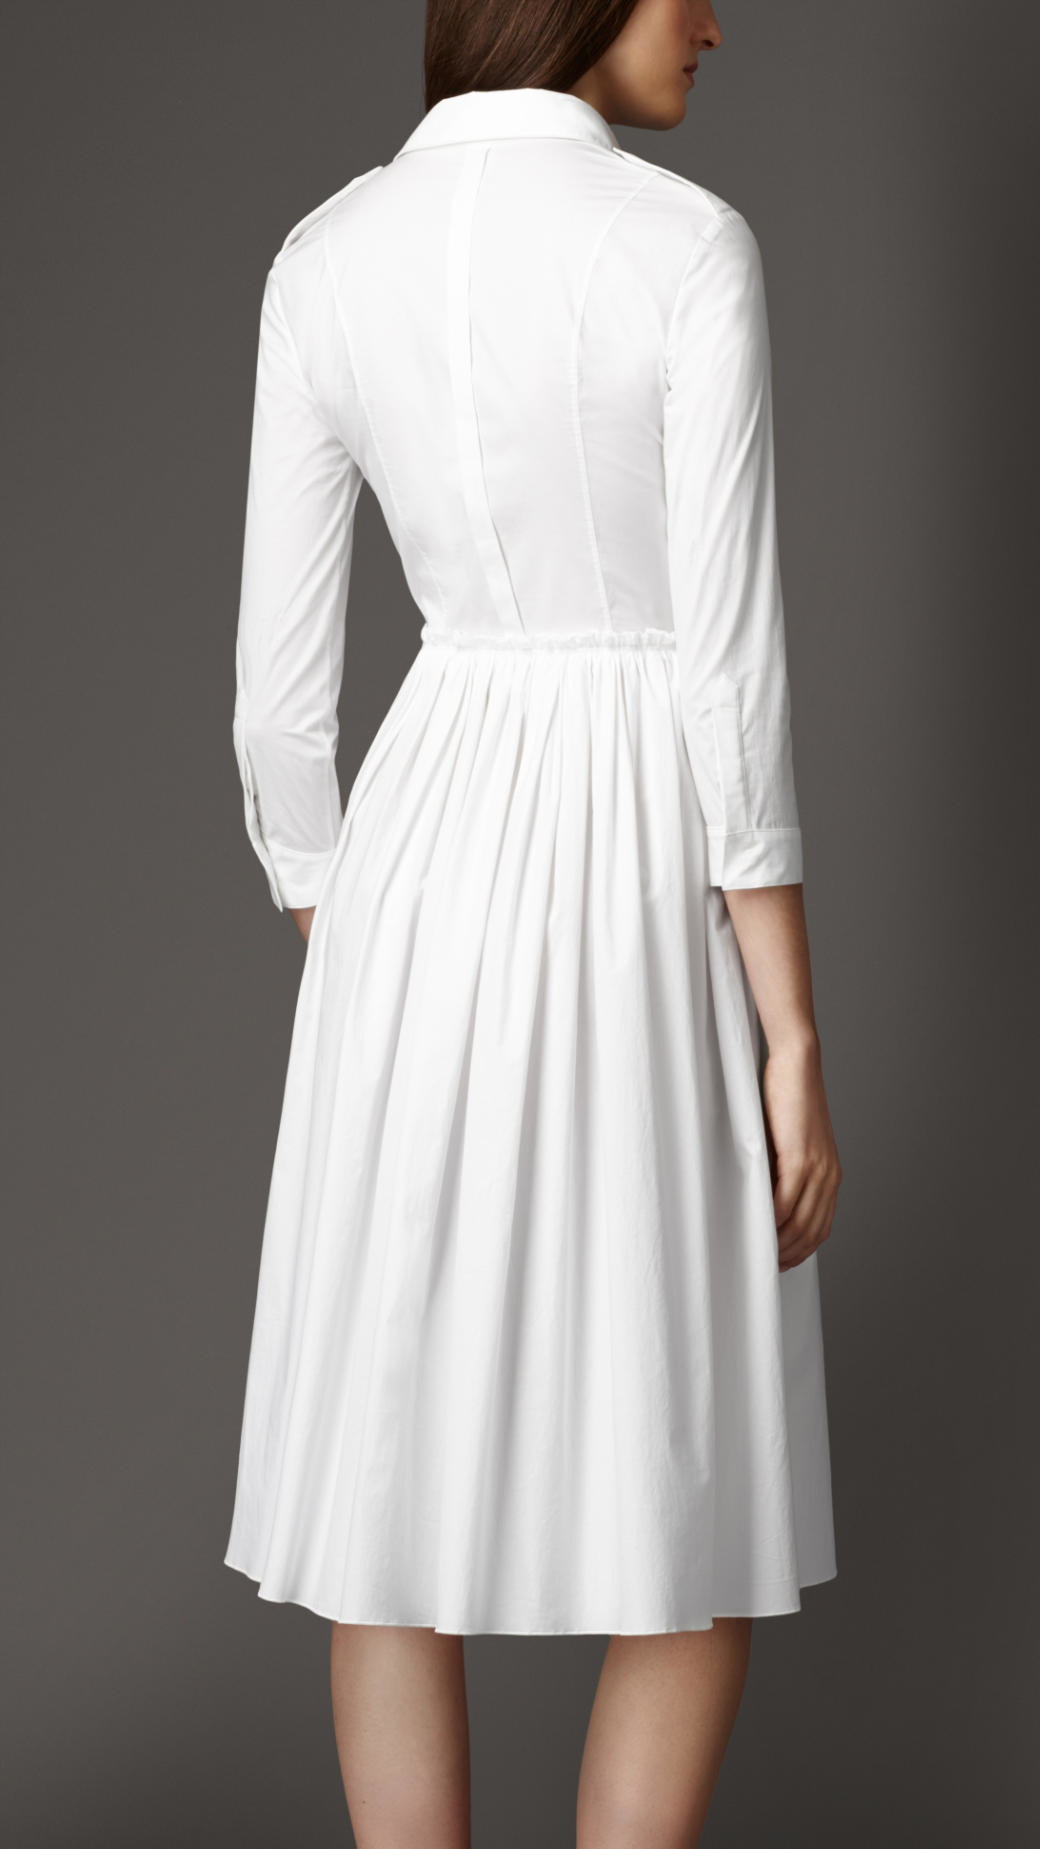 Burberry Skirted Stretch-Cotton Shirt Dress in White - Lyst